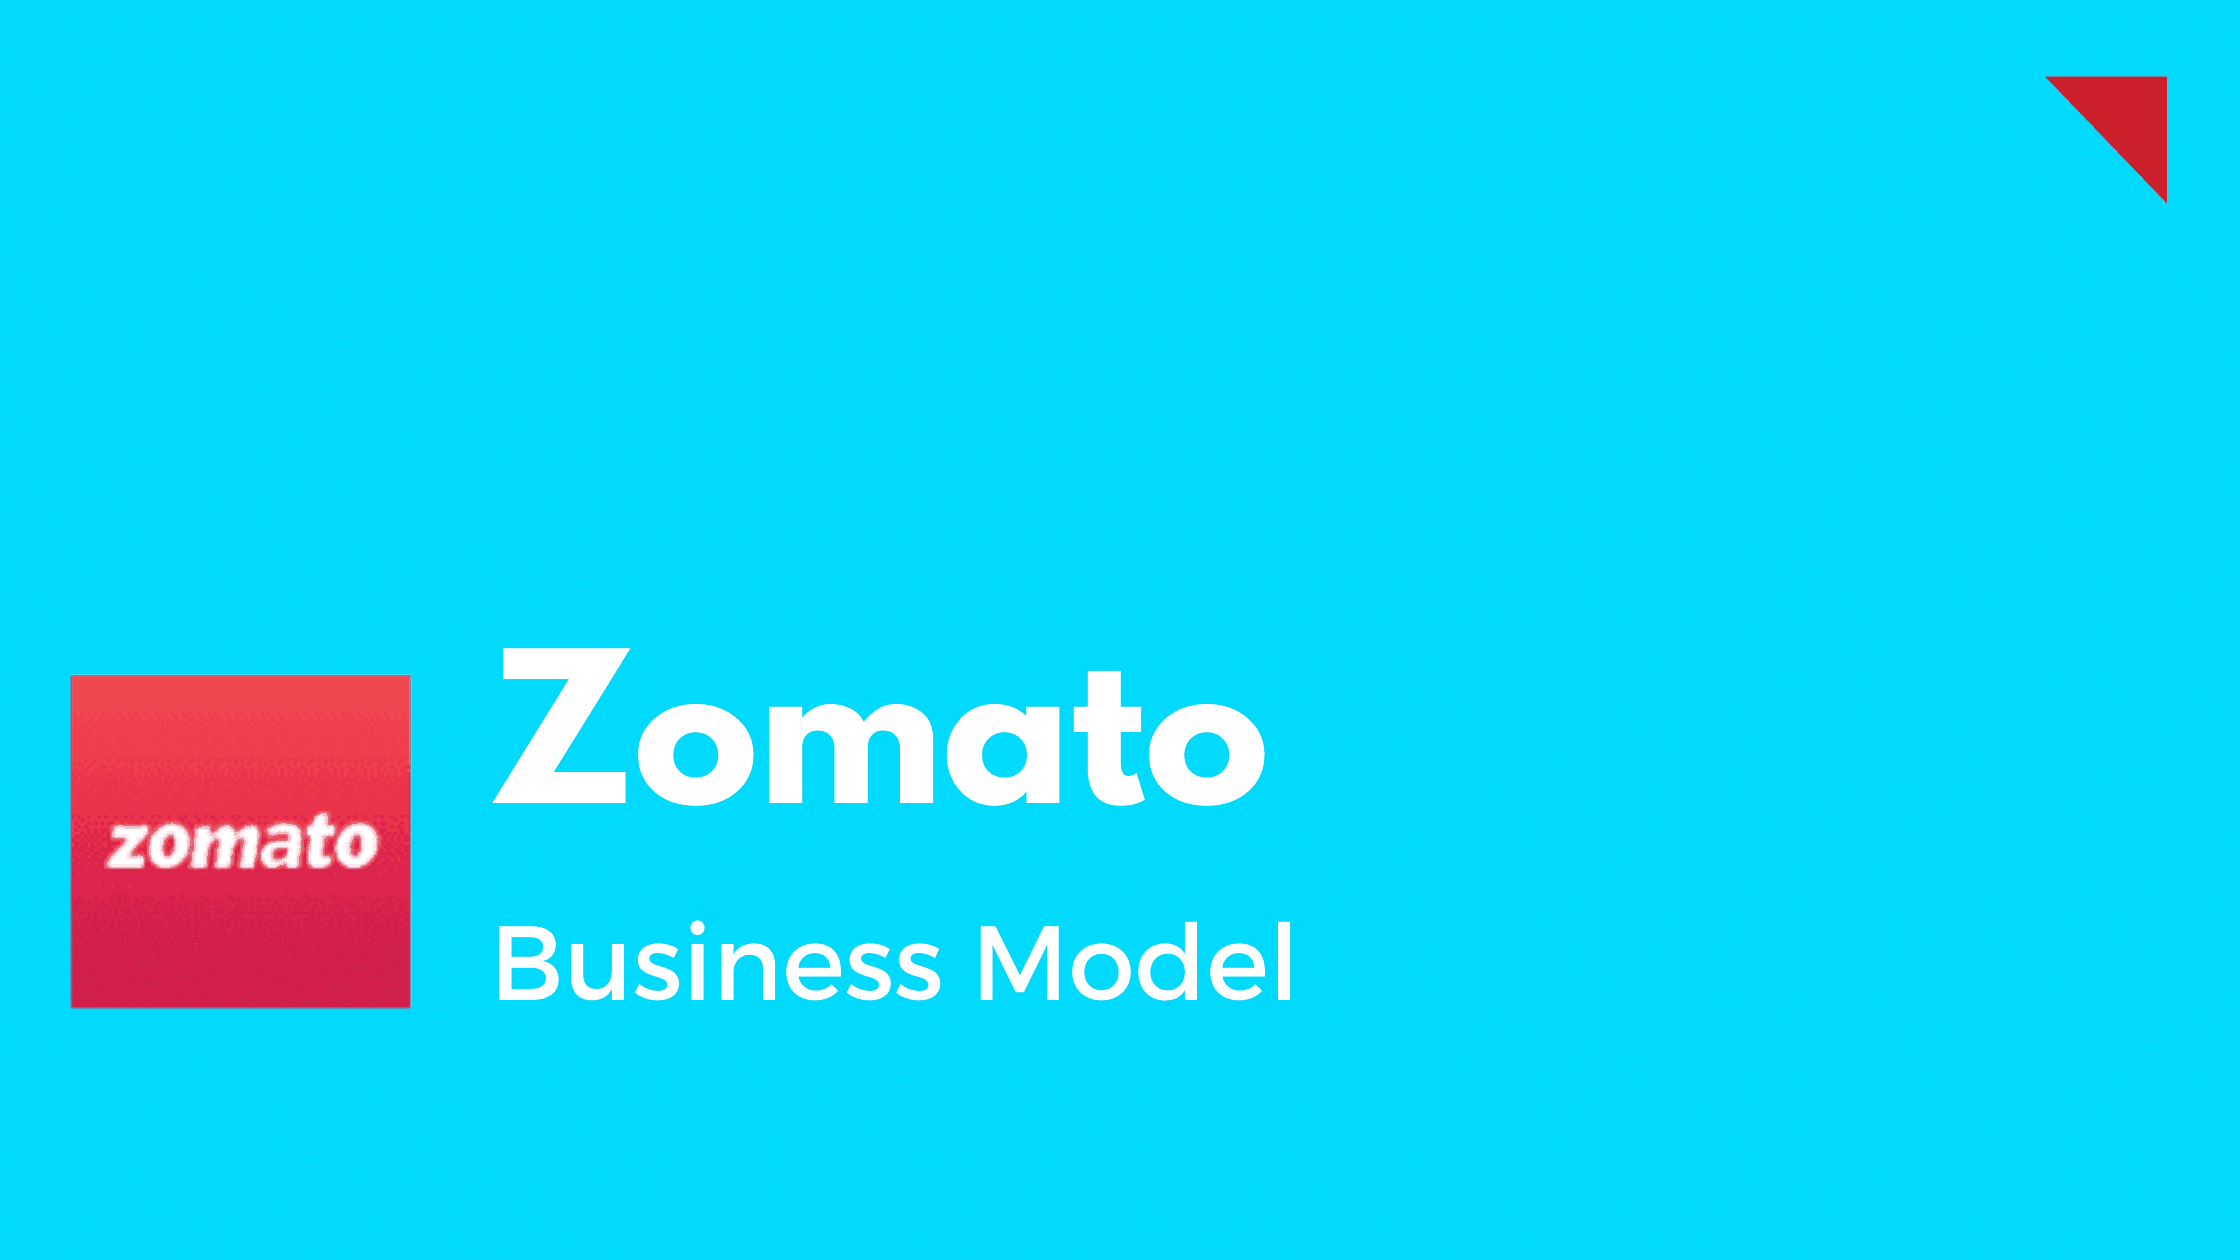 Zomato - Business Model - Featured Image